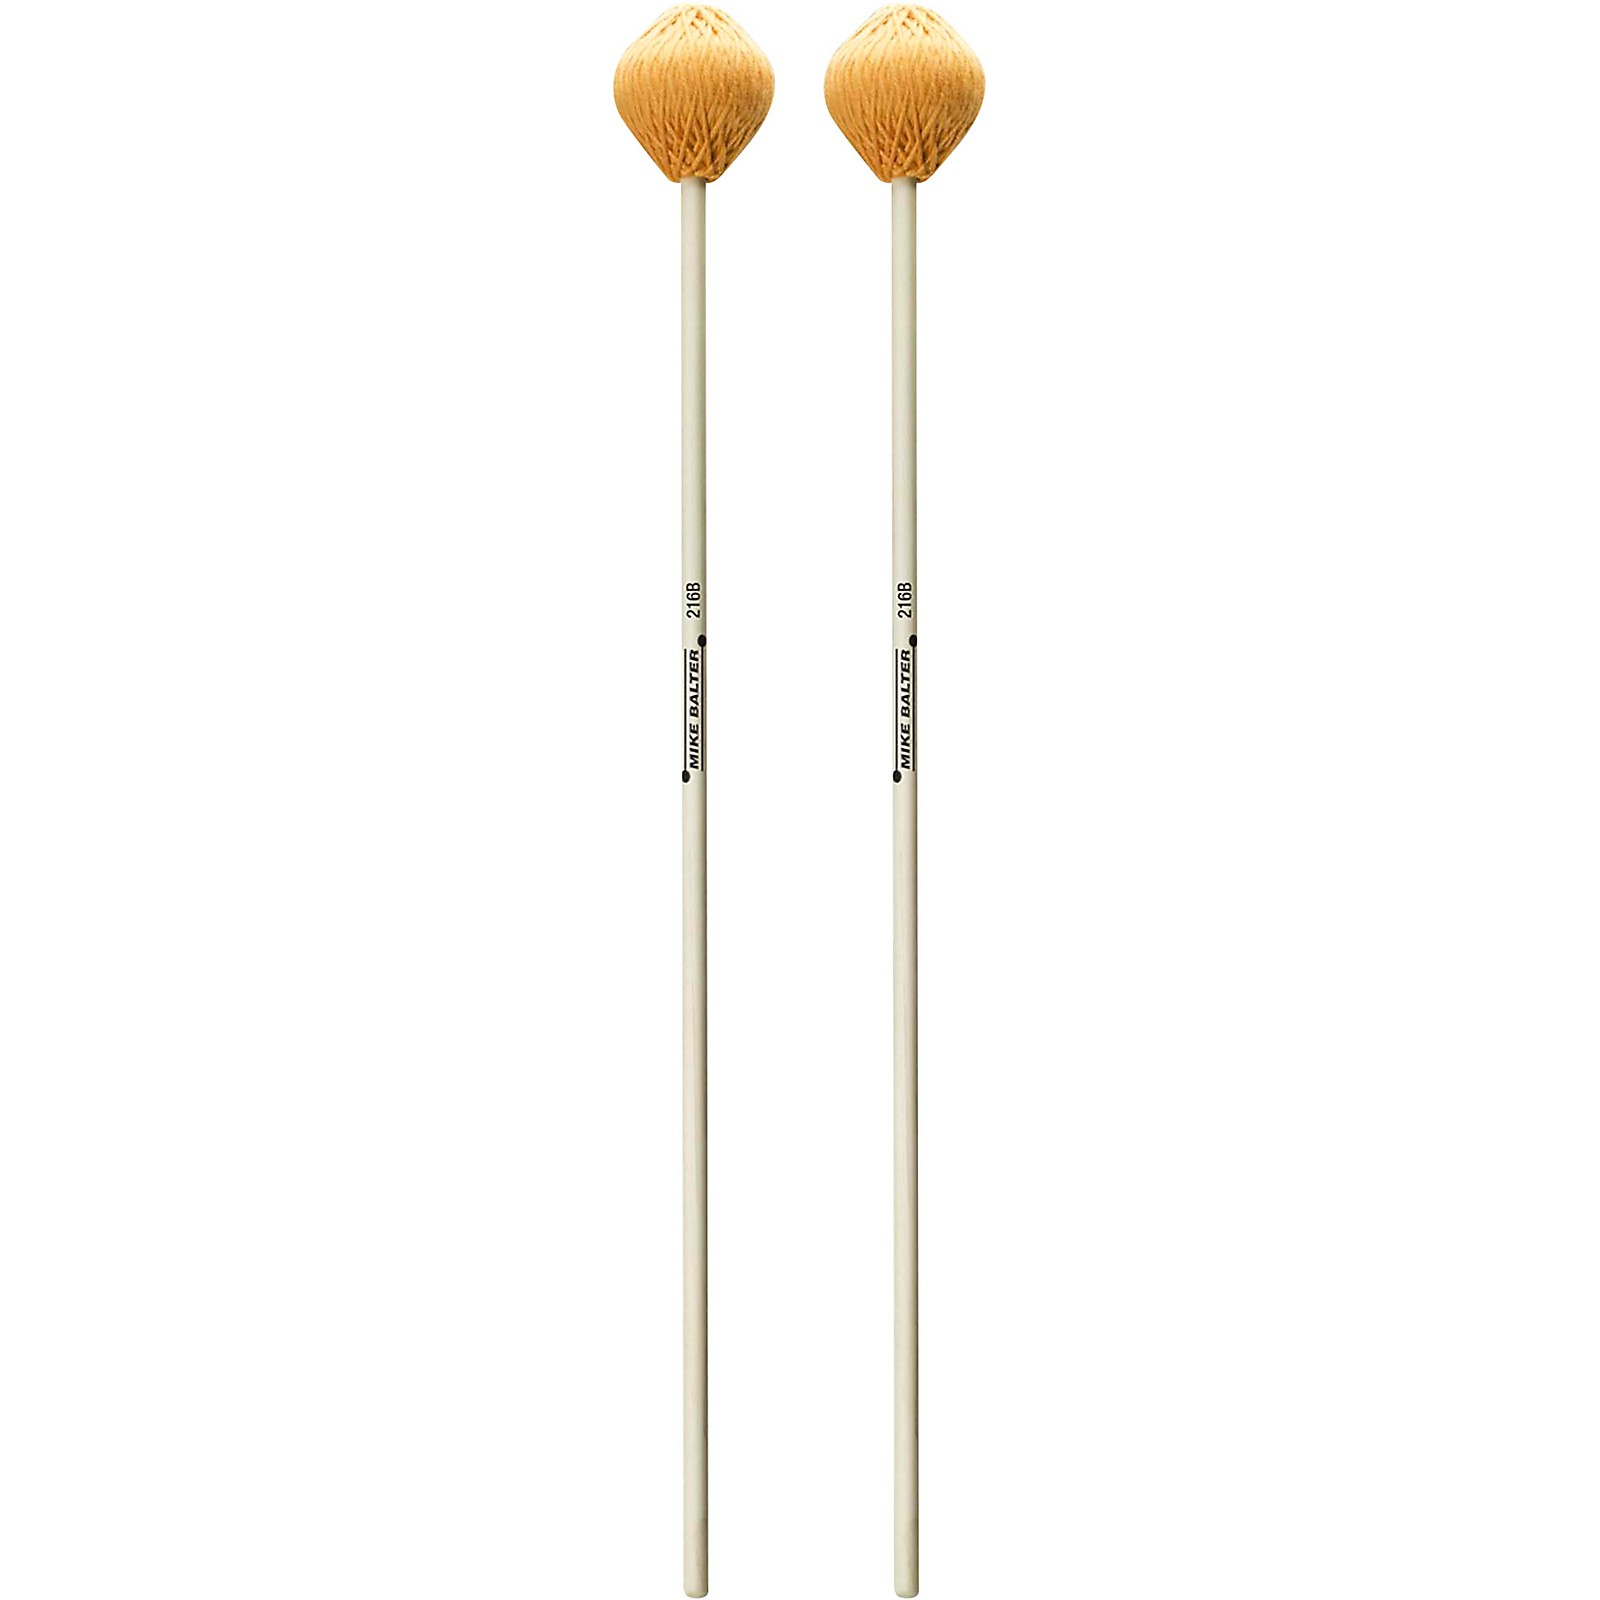 Mike Balter Chorale Series Birch Handle Marimba Mallets